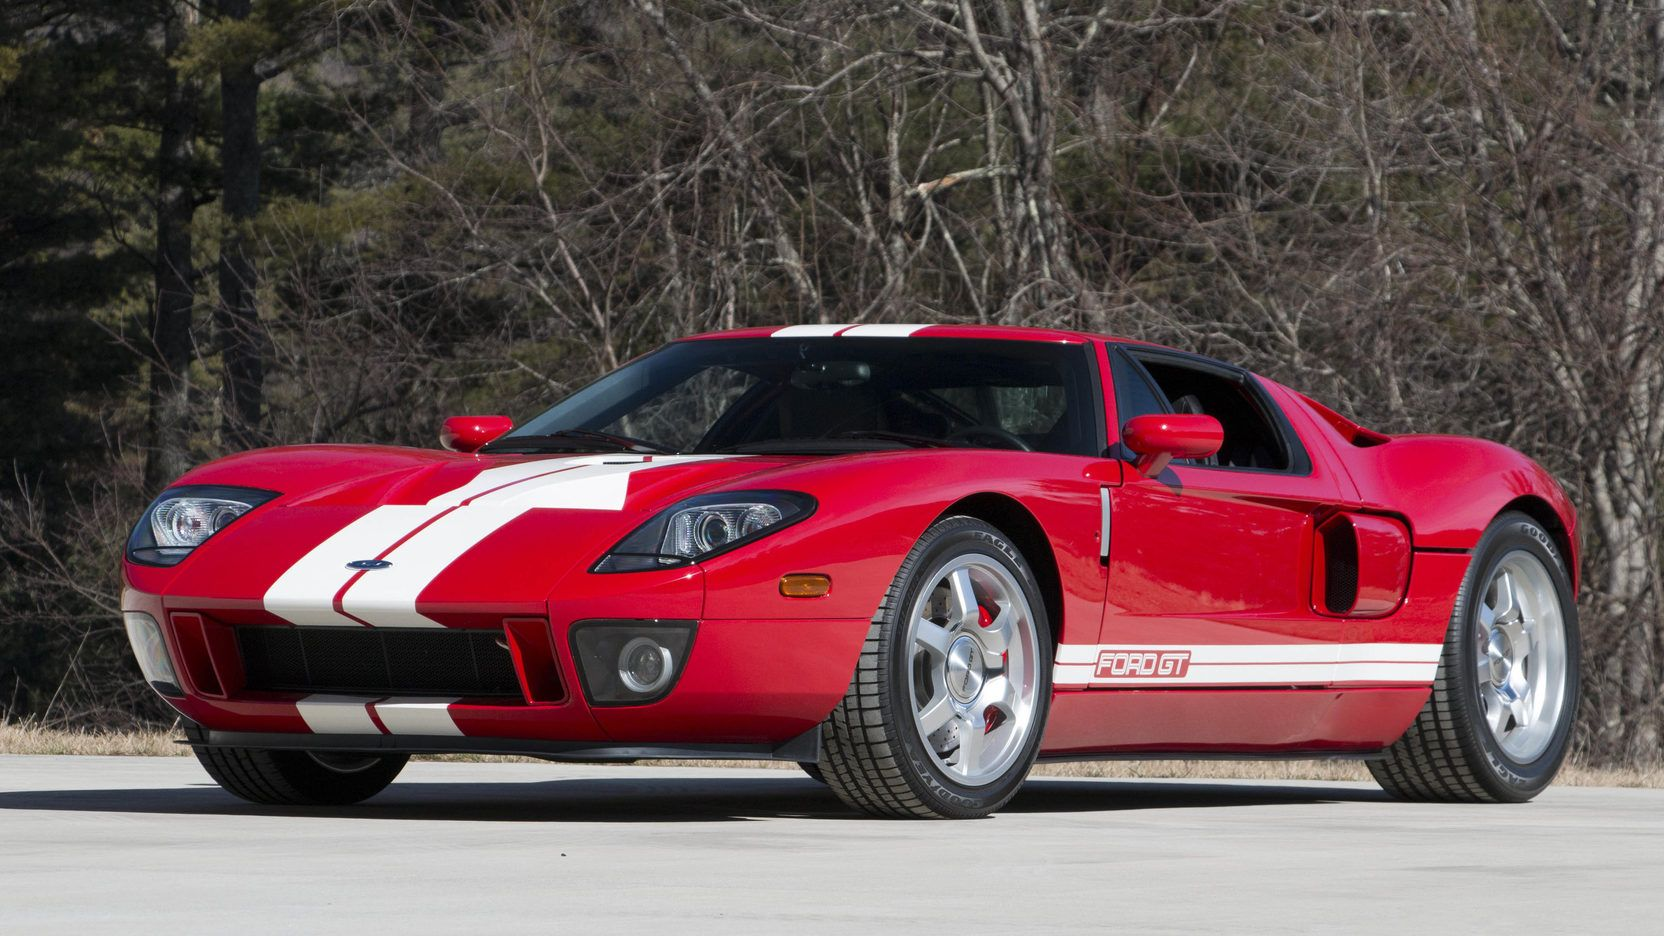 2005 Ford Gt Presented As Lot S114 At Indianapolis In Ford Gt